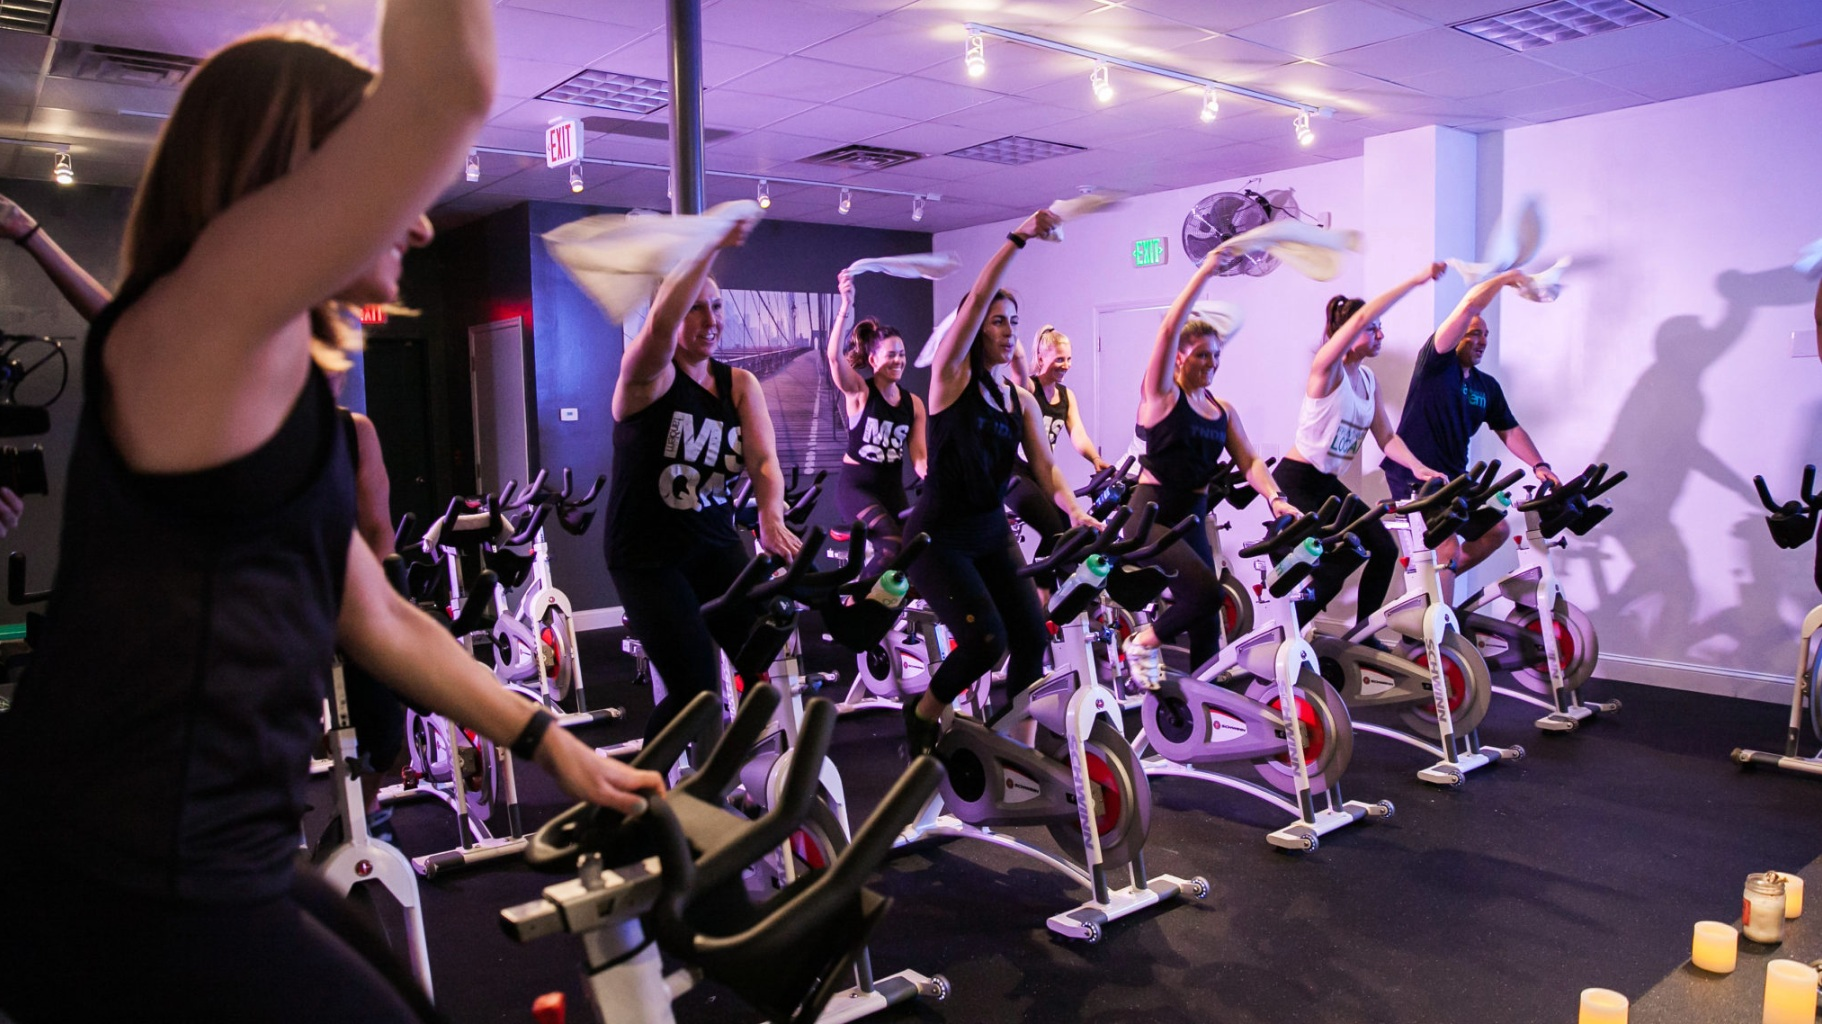 Tandem - 200 Ocean Blvd, Long Branch, NJ, 07740Tandem Cycle is an invigorating indoor cycling experience that offers a total body workout, benefiting both your mind and body. WEBSITE